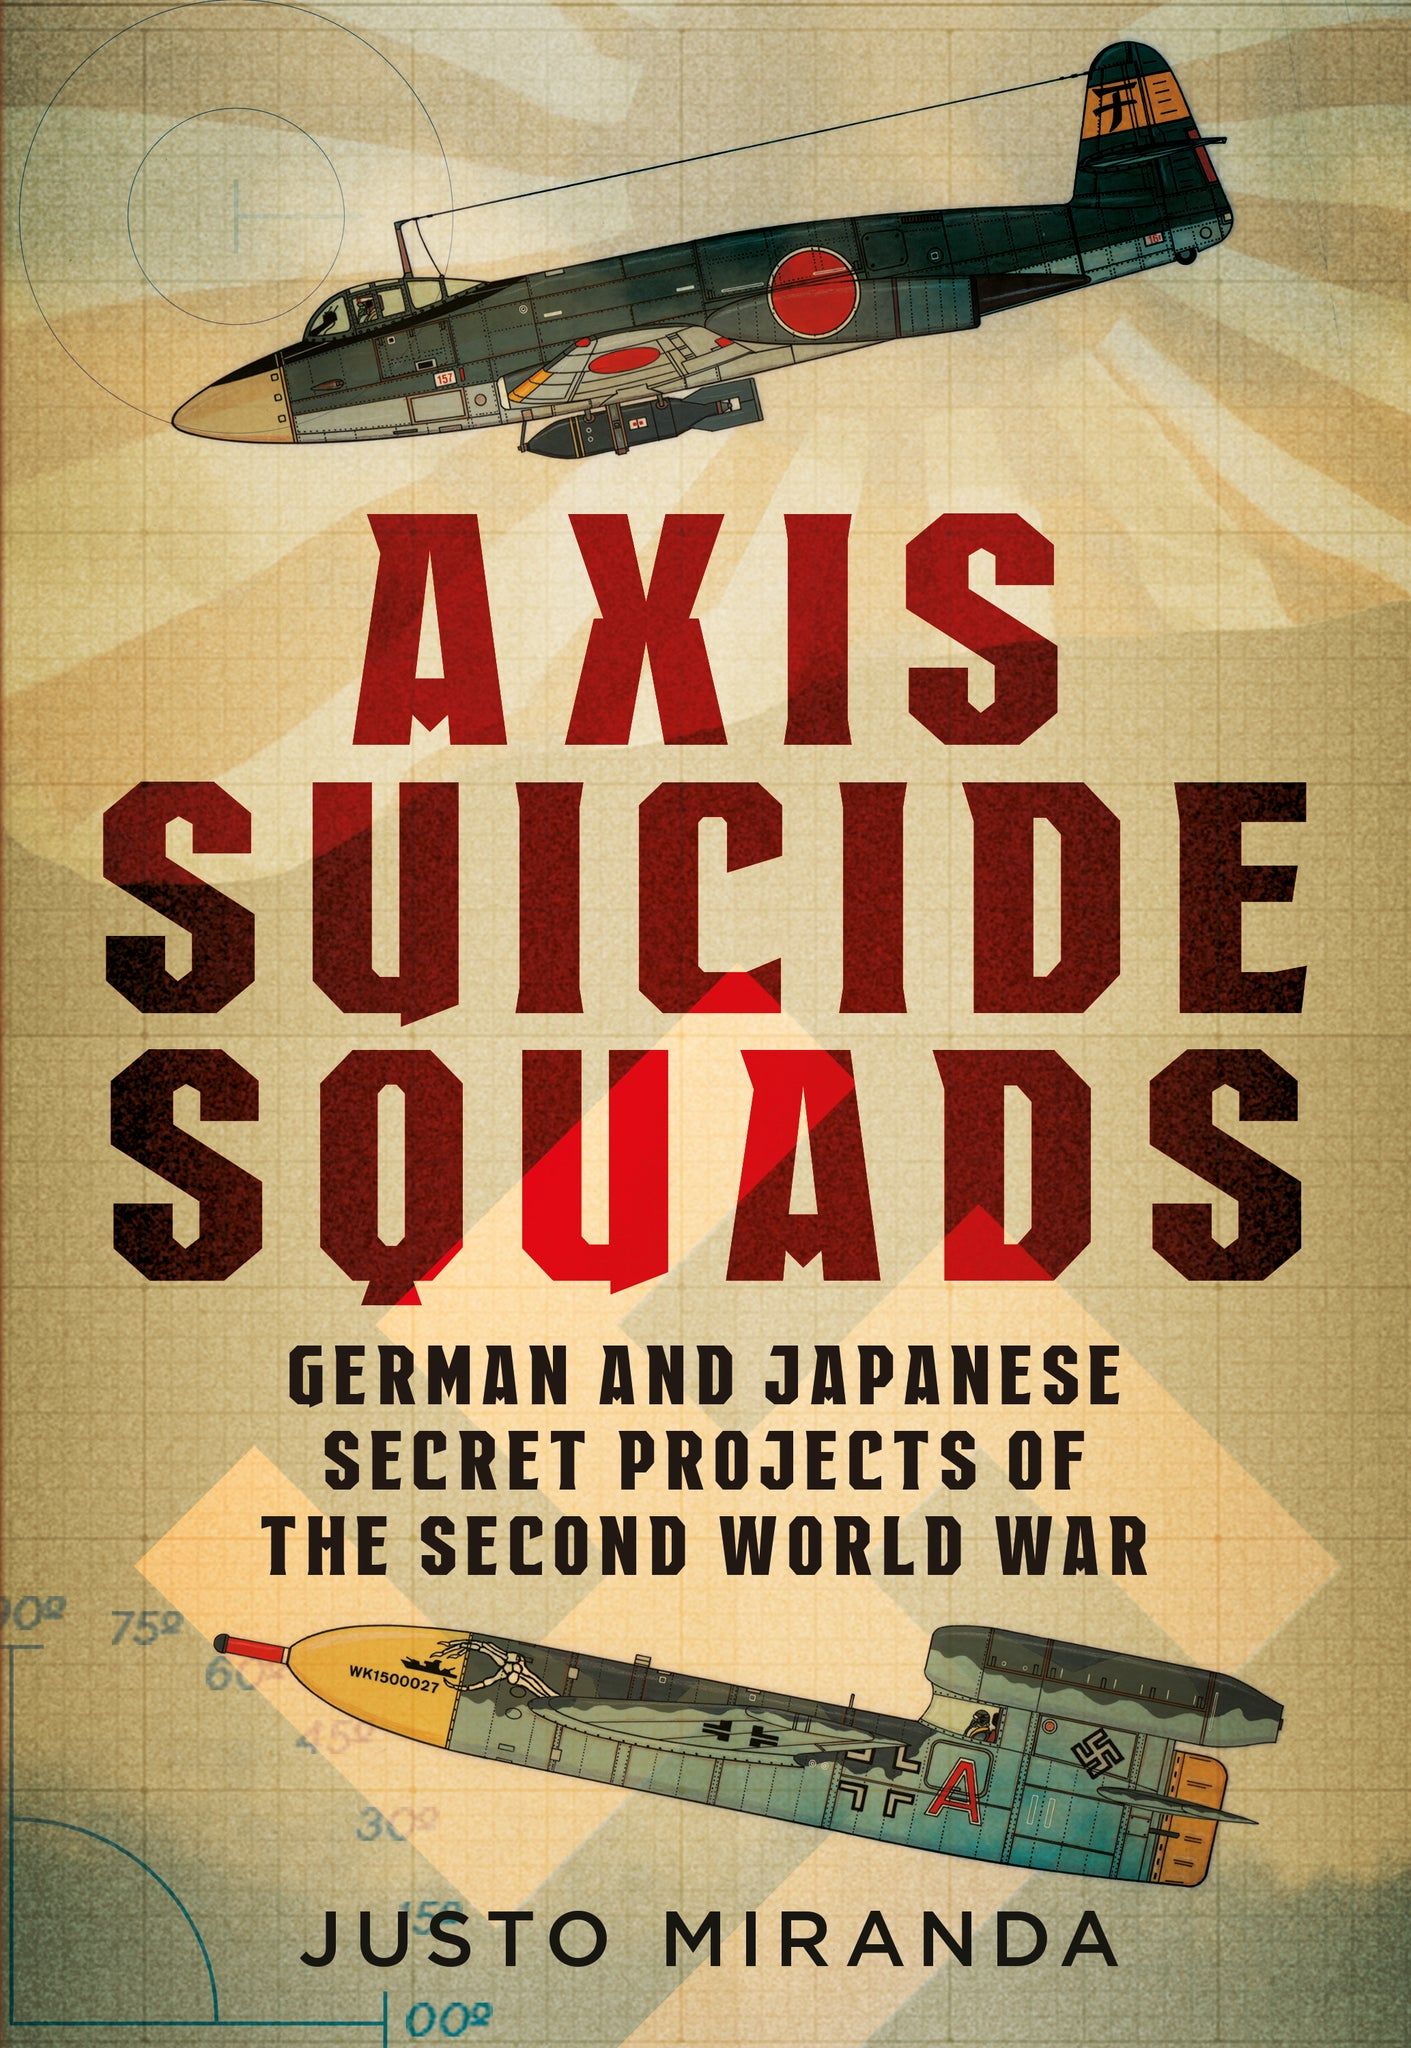 Axis Suicide Squads: German and Japanese Secret Projects of the Second World War - available from Fonthill Media